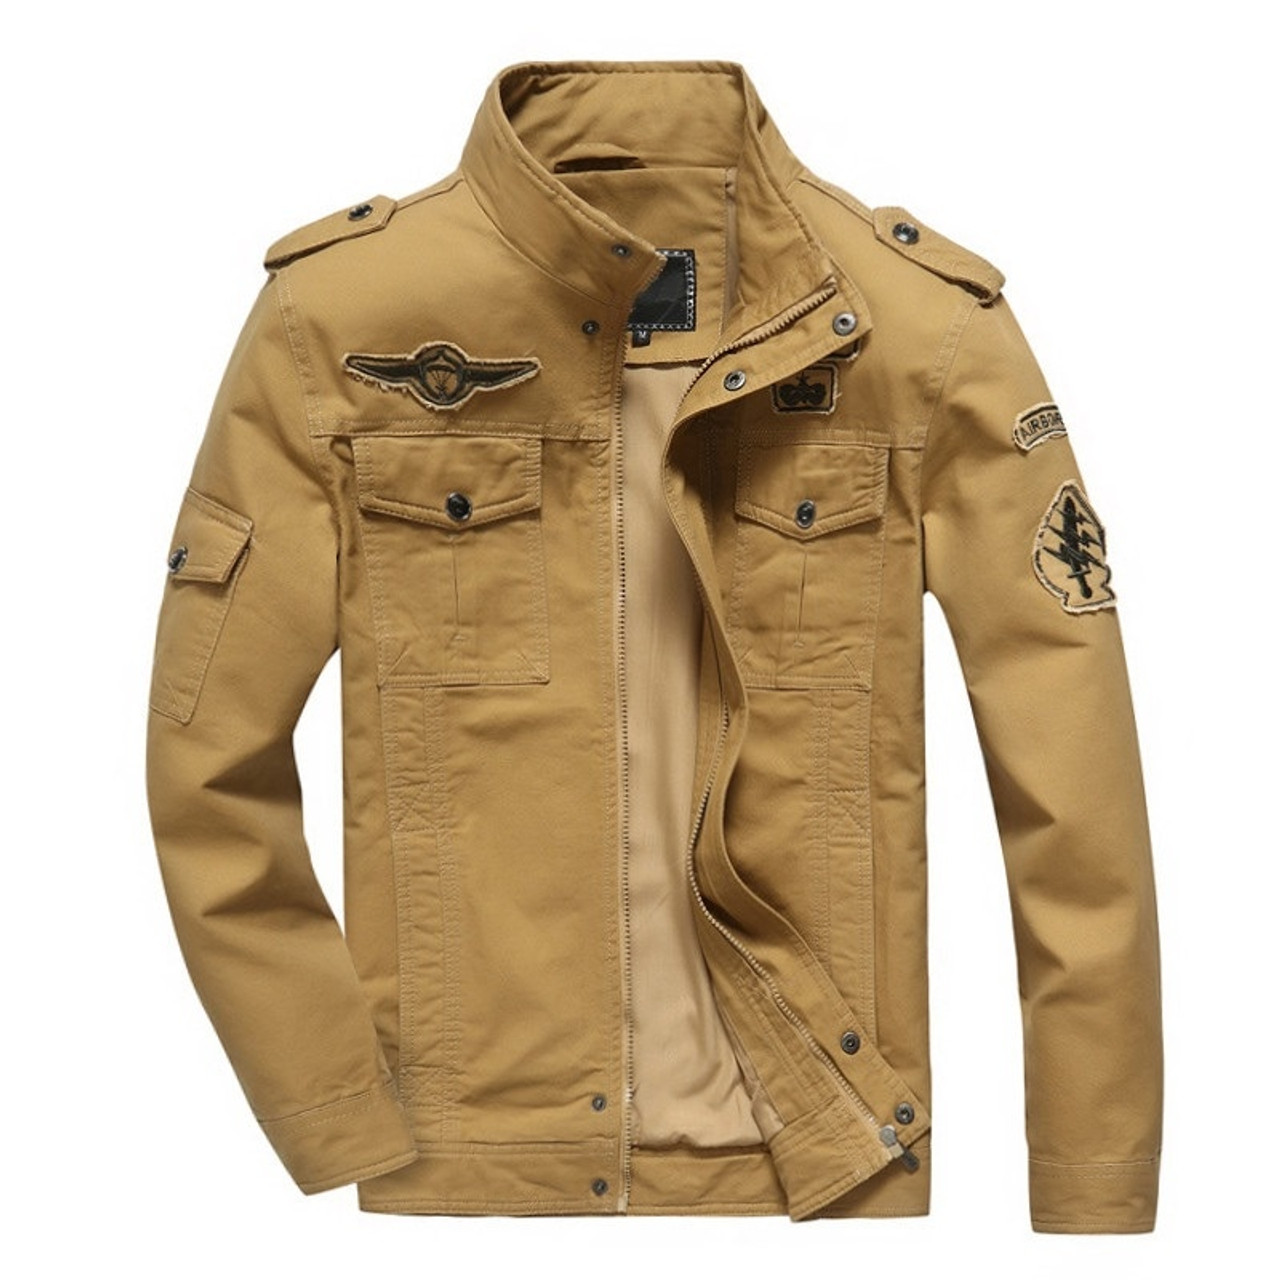 4686a1a43b4 hot sale spring Autumn Mens military Denim jacket jean cotton Air Force One  coat army soldier ...